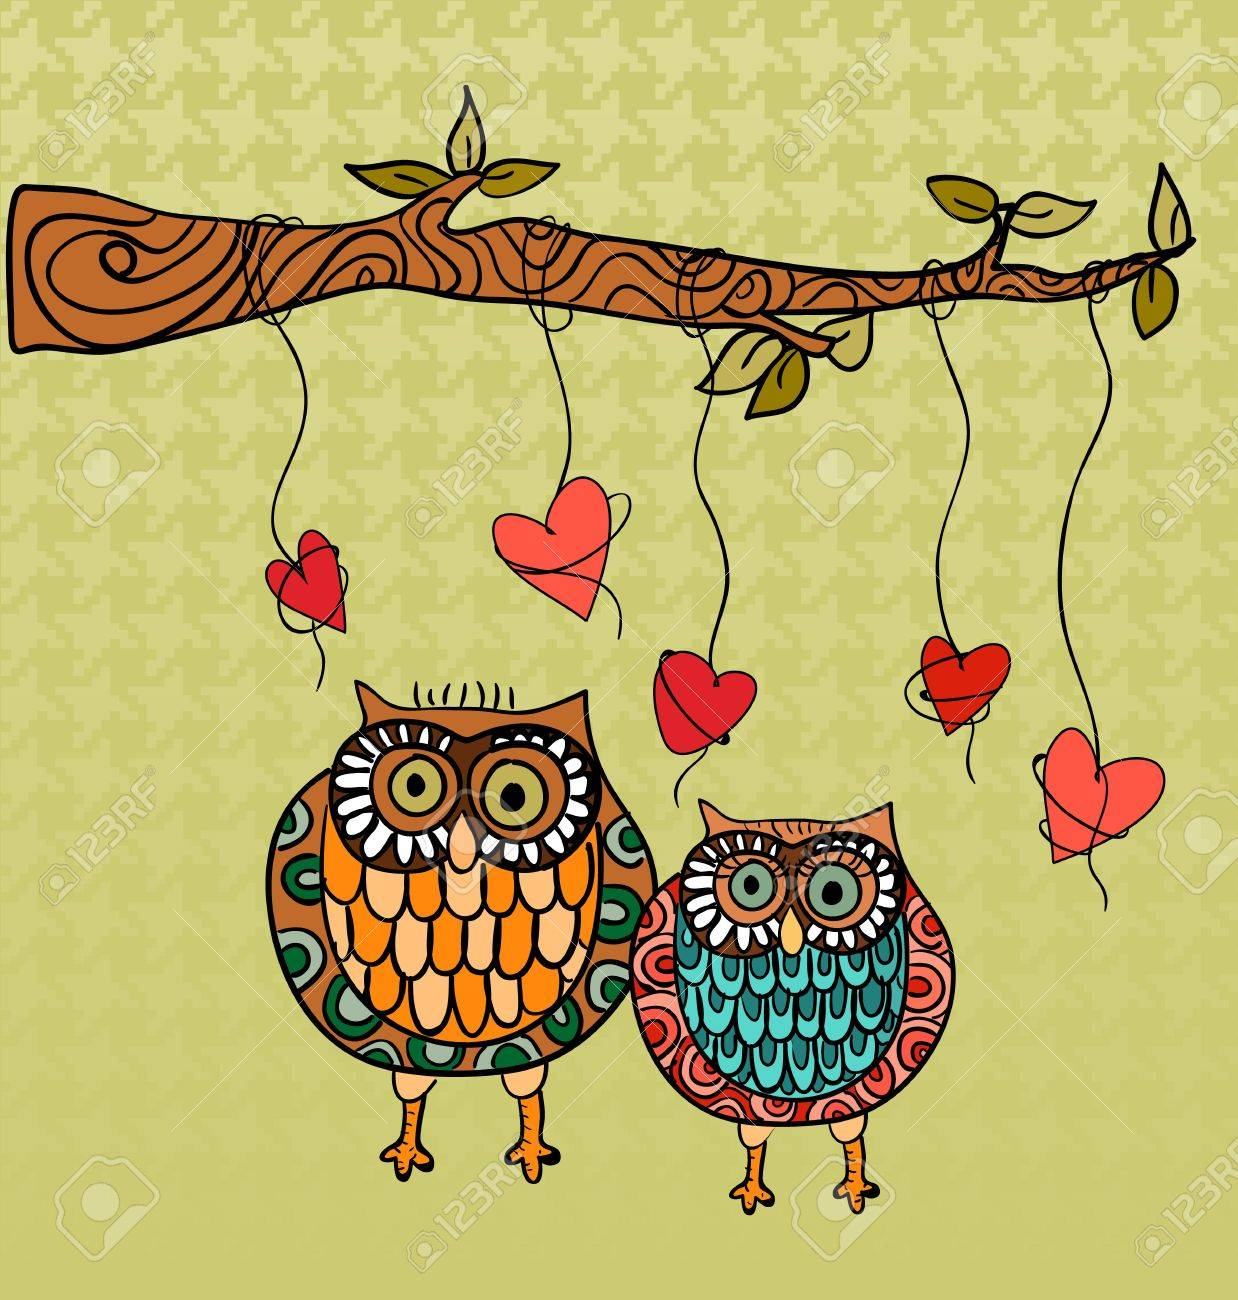 Valentine day owls couple love greeting card. Vector illustration layered for easy manipulation and custom coloring. Stock Vector - 17878157